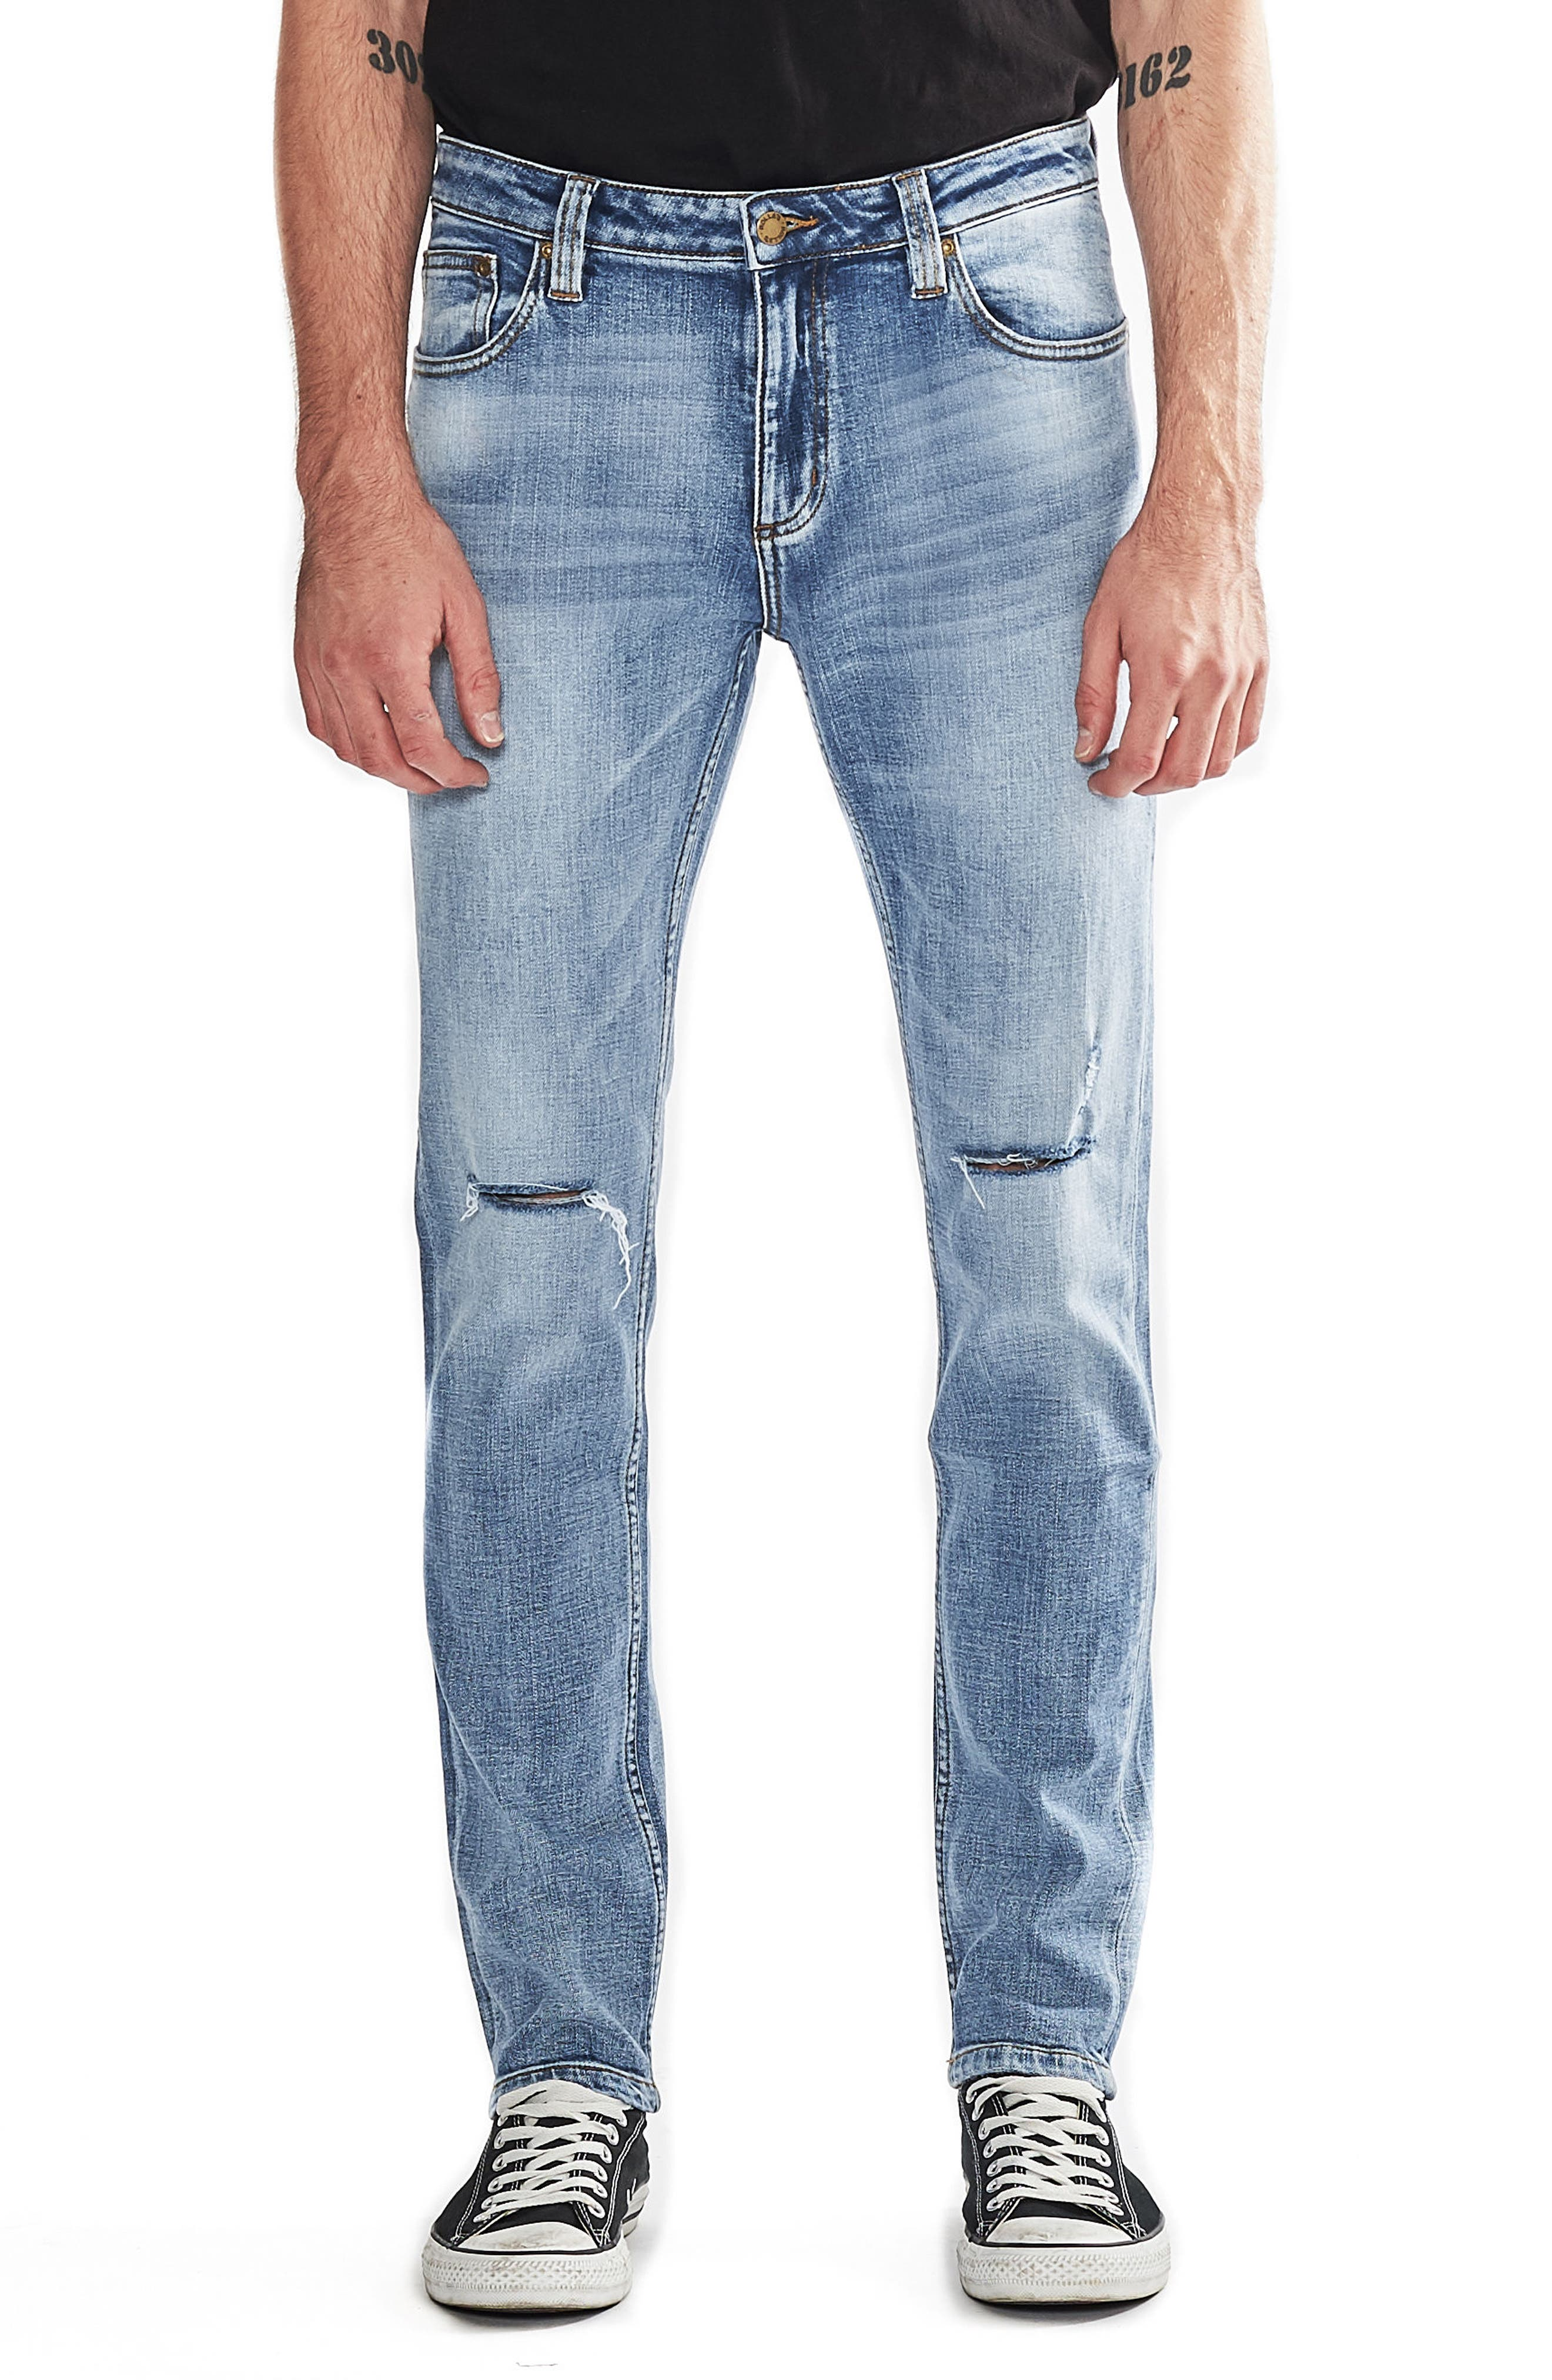 Rolla's Tim Slims Slim Fit Jeans (Trash Bag Authentic)